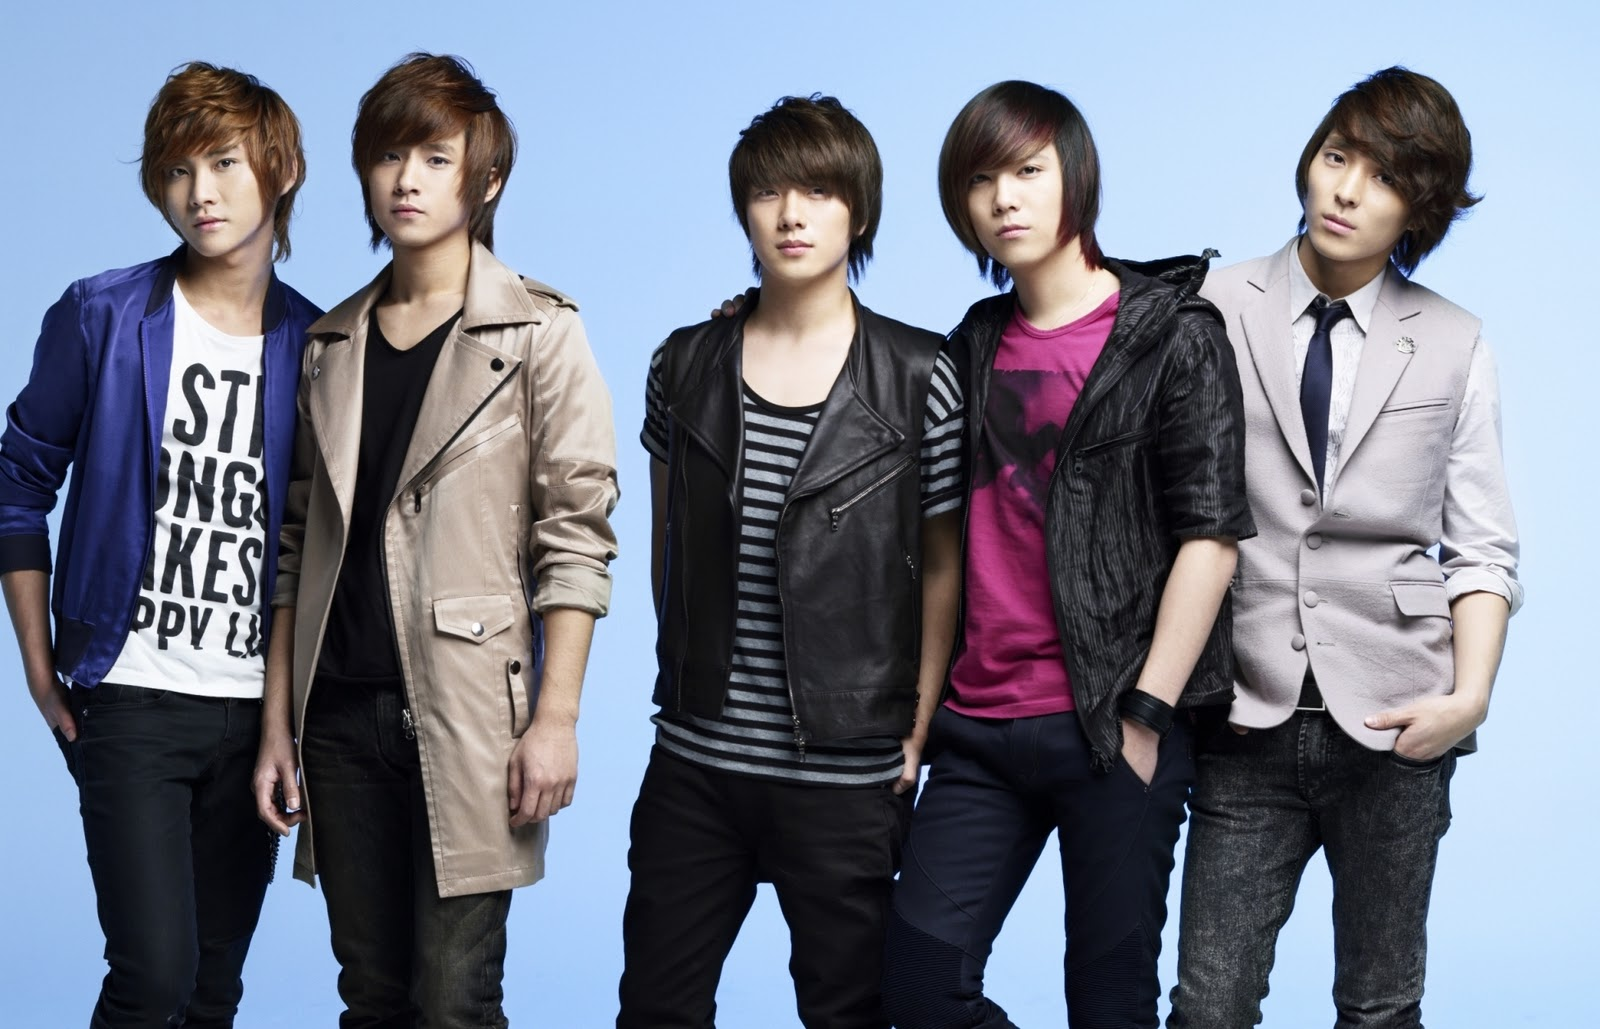 ft island and cnblue relationship